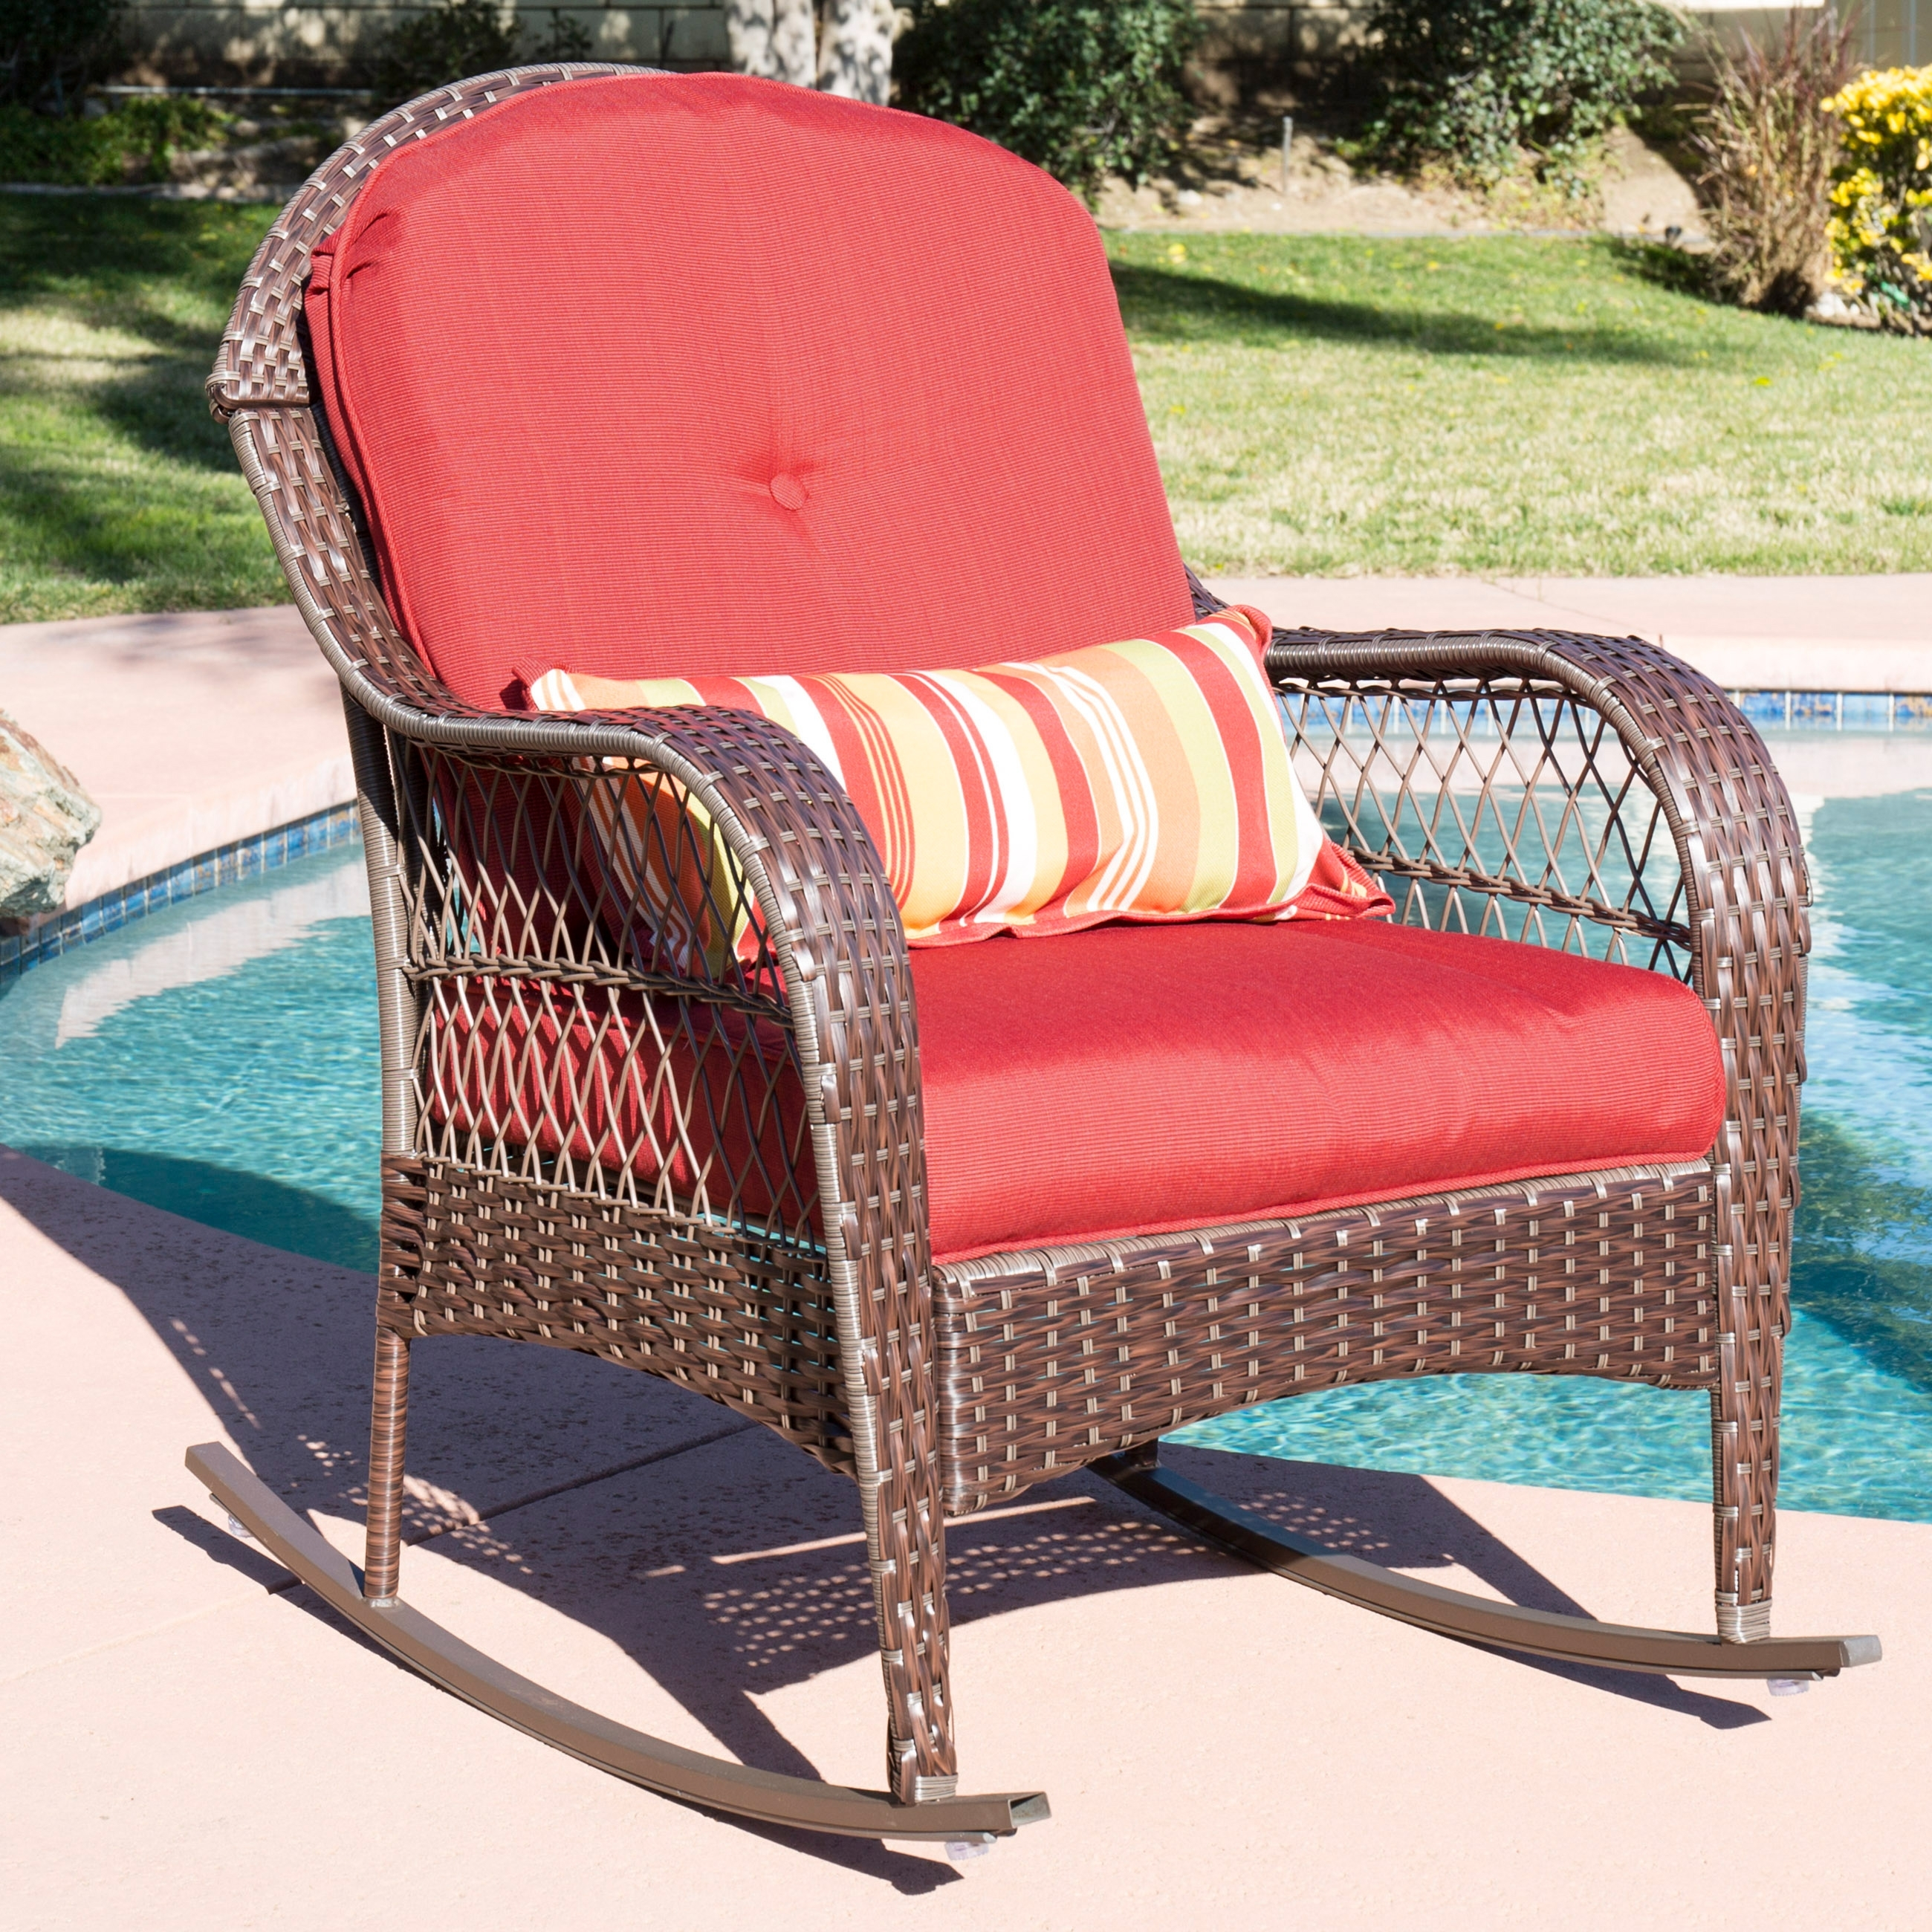 Best And Newest Best Choice Products Wicker Rocking Chair Patio Porch Deck Furniture Intended For Wicker Rocking Chairs With Cushions (View 1 of 15)